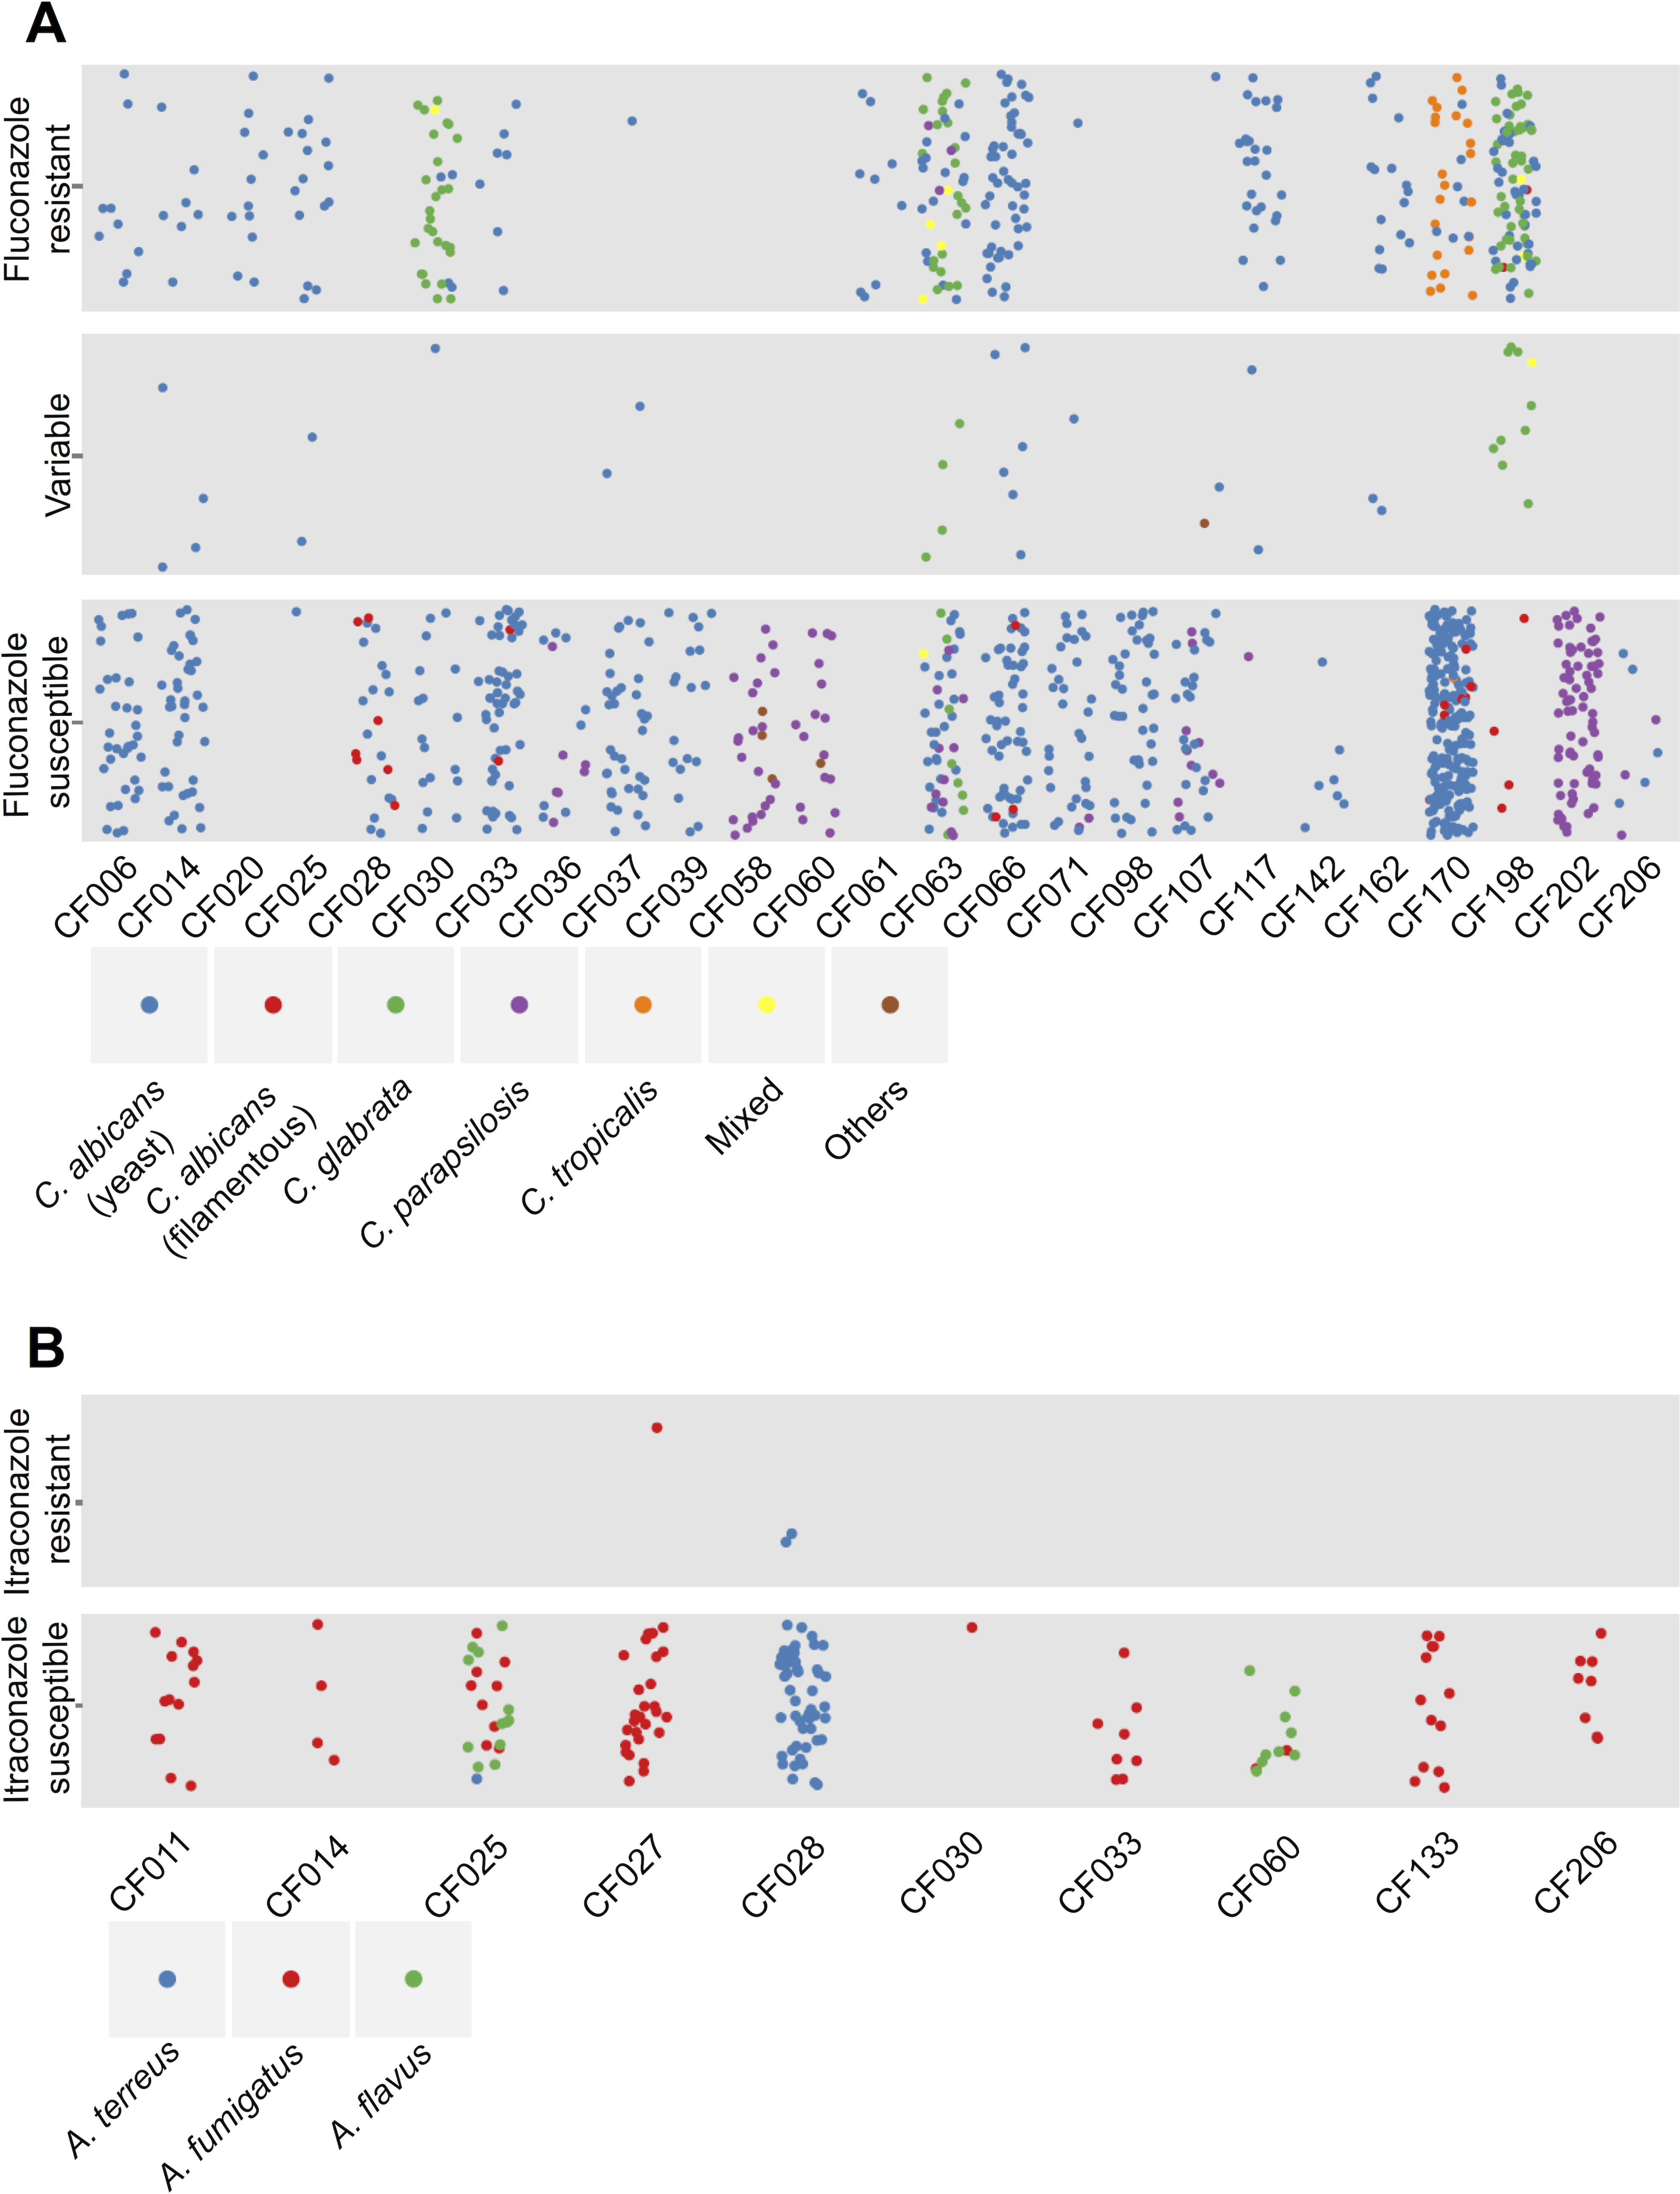 Diversity of species and antifungal resistance profiles of 1,603 fungal isolates from cystic fibrosis patients.